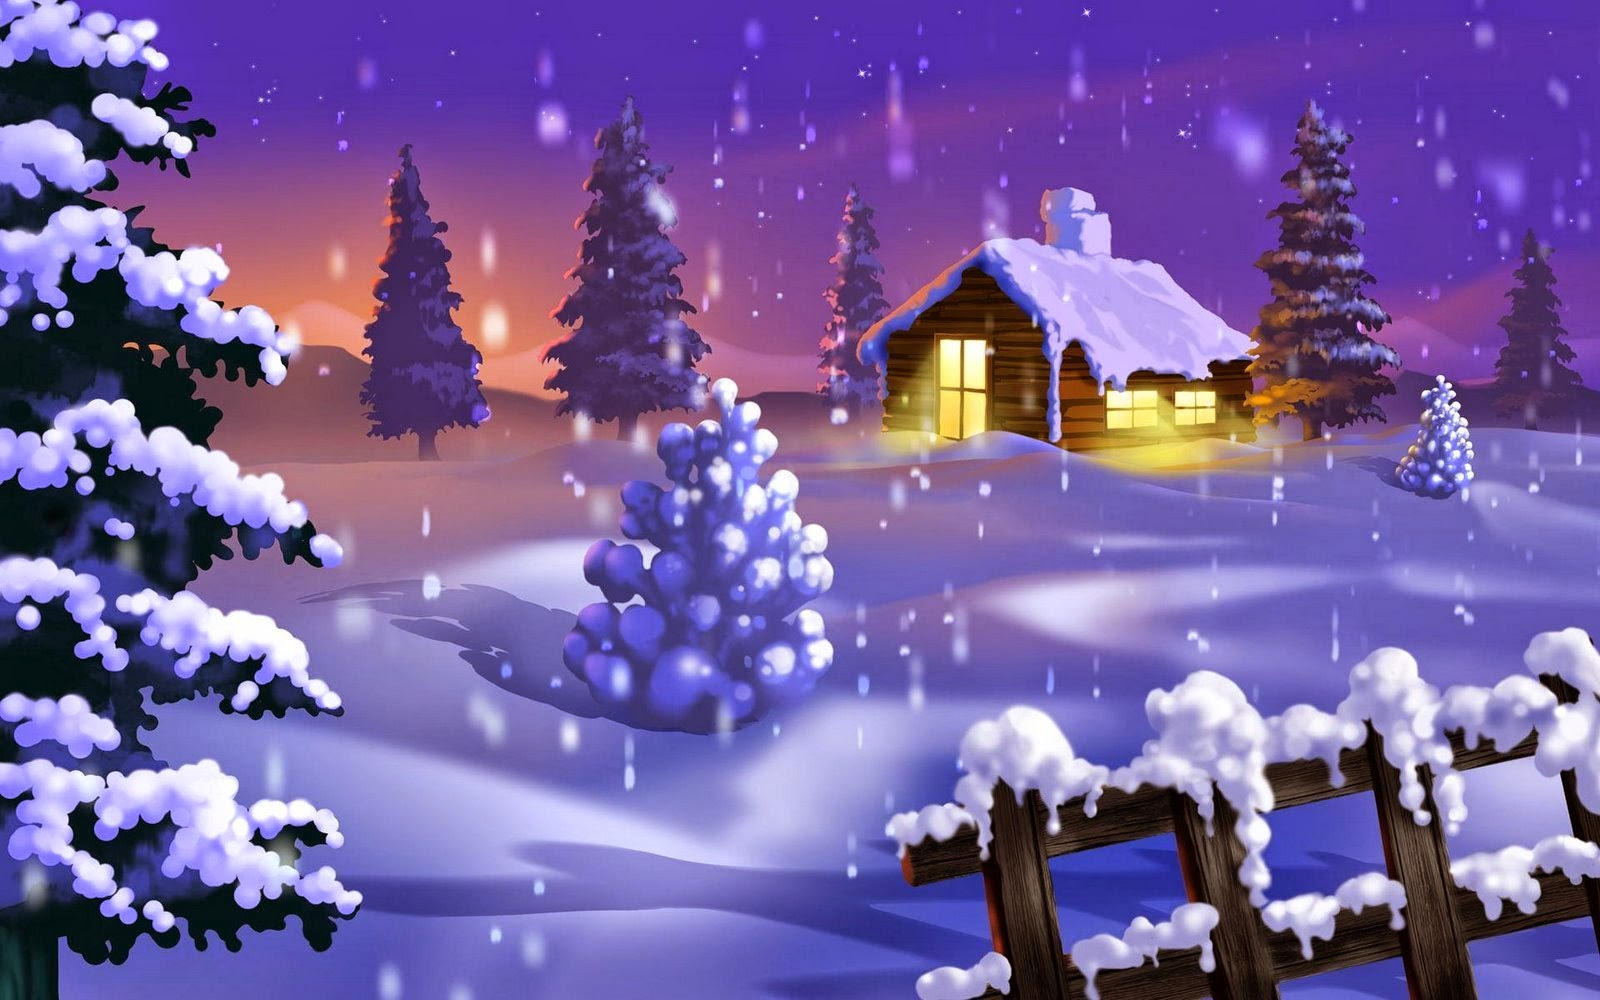 Download Wallpaper Name Sameer - happy%2Bchristmas%2Bwallpapers  Collection_213484.jpg